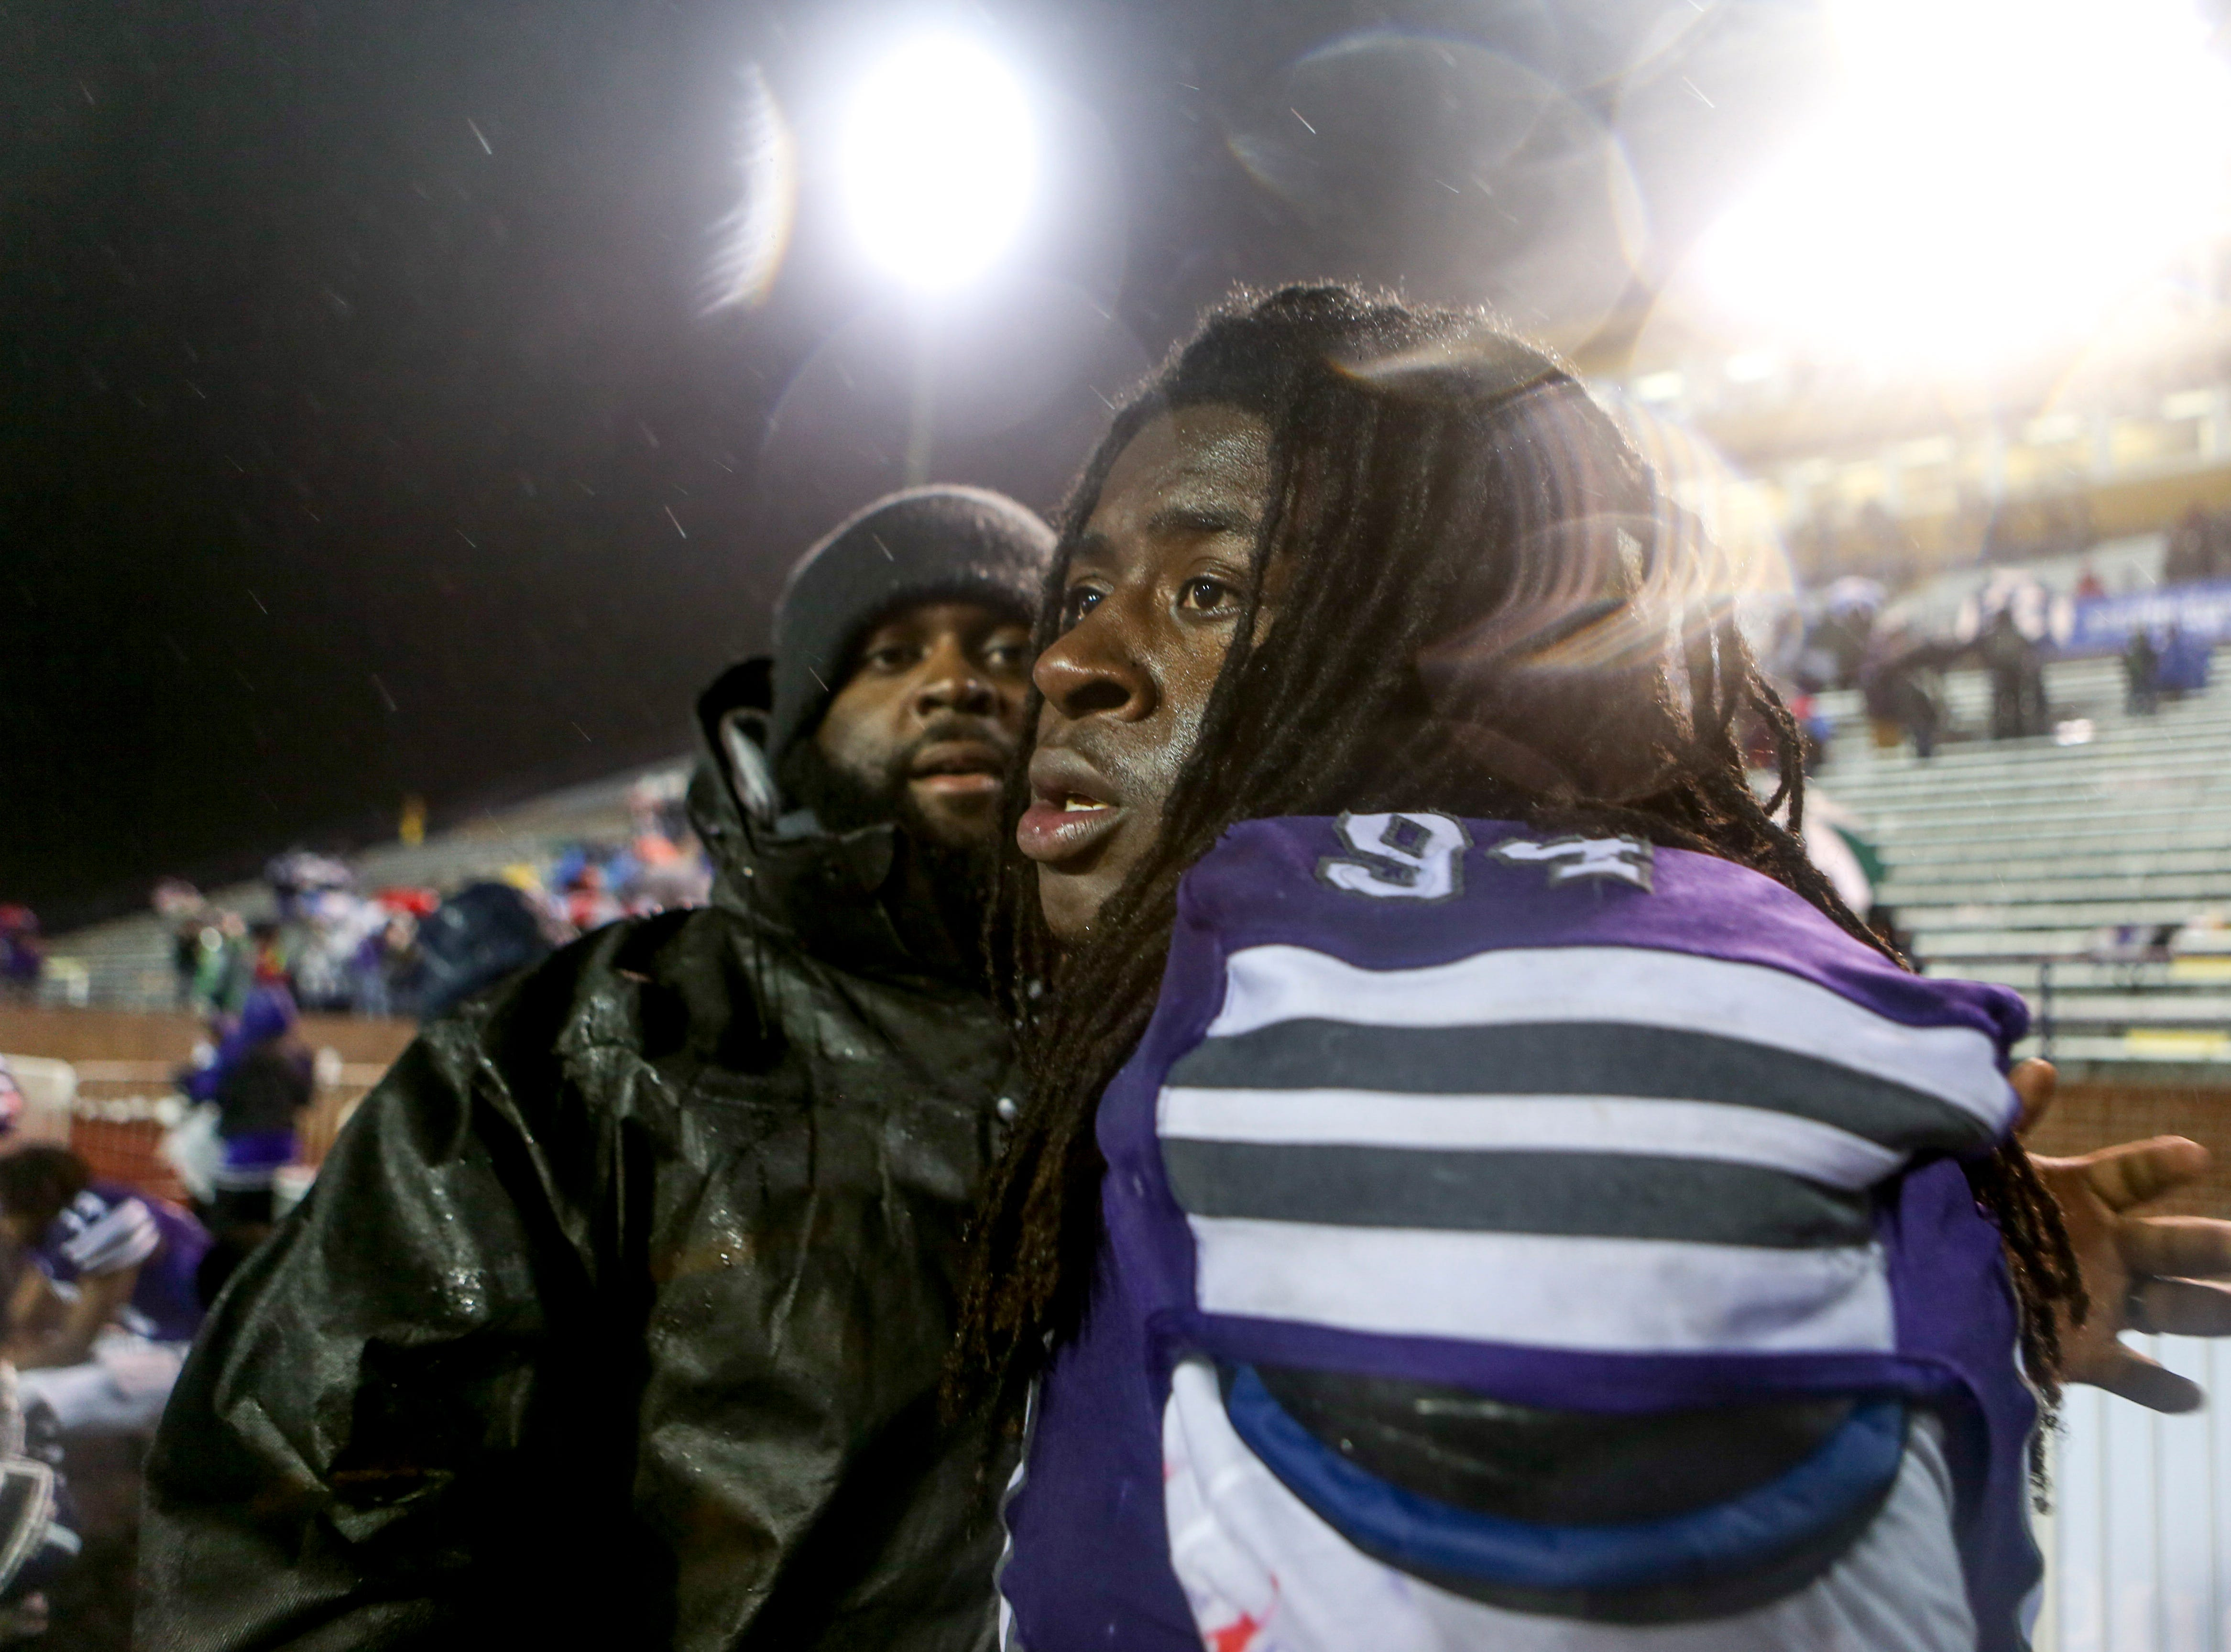 Haywood's Derrion Bell (94) looks out over the field to his teammates after losing the Class 4A Blue Cross Bowl between Haywood and Greeneville at Tennessee Tech's Tucker Stadium in Cookeville, Tenn., on Thursday, Nov. 29, 2018.